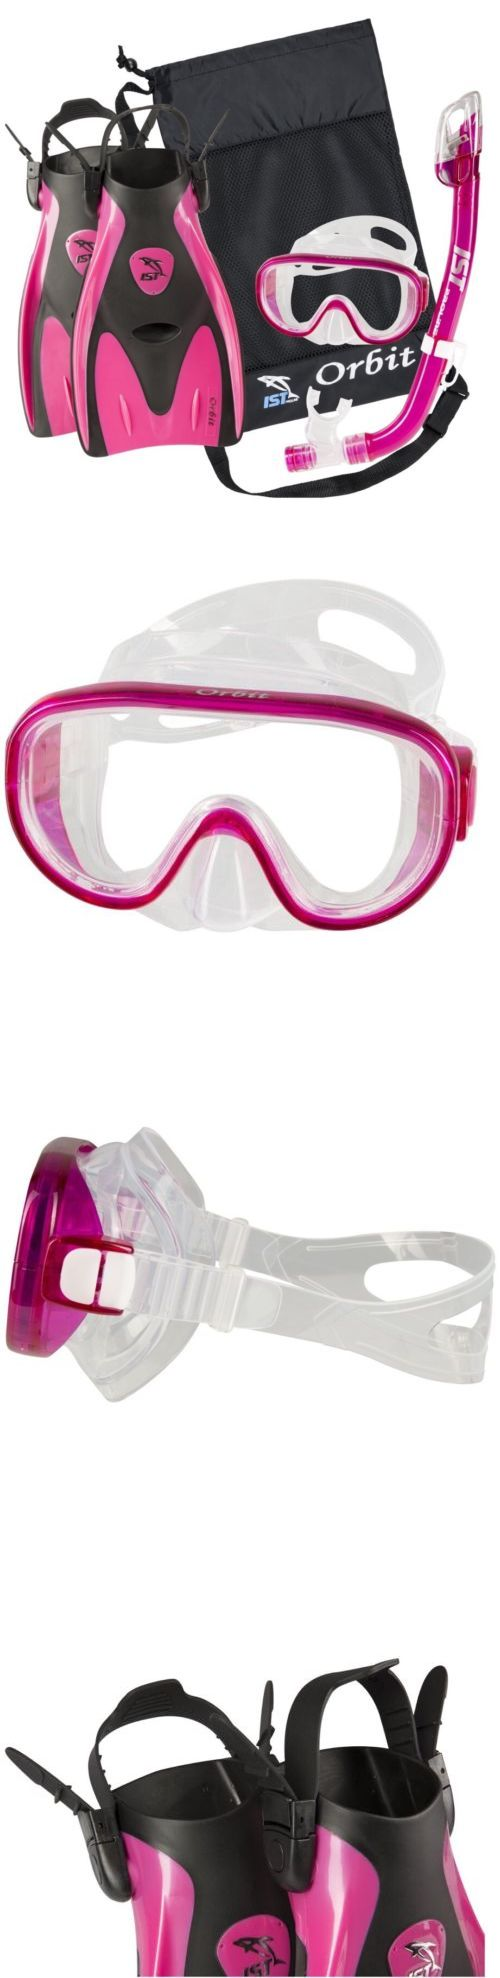 Snorkels and Sets 71162: Ist Orbit Snorkeling Scuba Set | Mask And Fins Gear Bag | Pink | Small (S) -> BUY IT NOW ONLY: $40 on eBay! http://www.deepbluediving.org/tips-safe-ascent-descent/